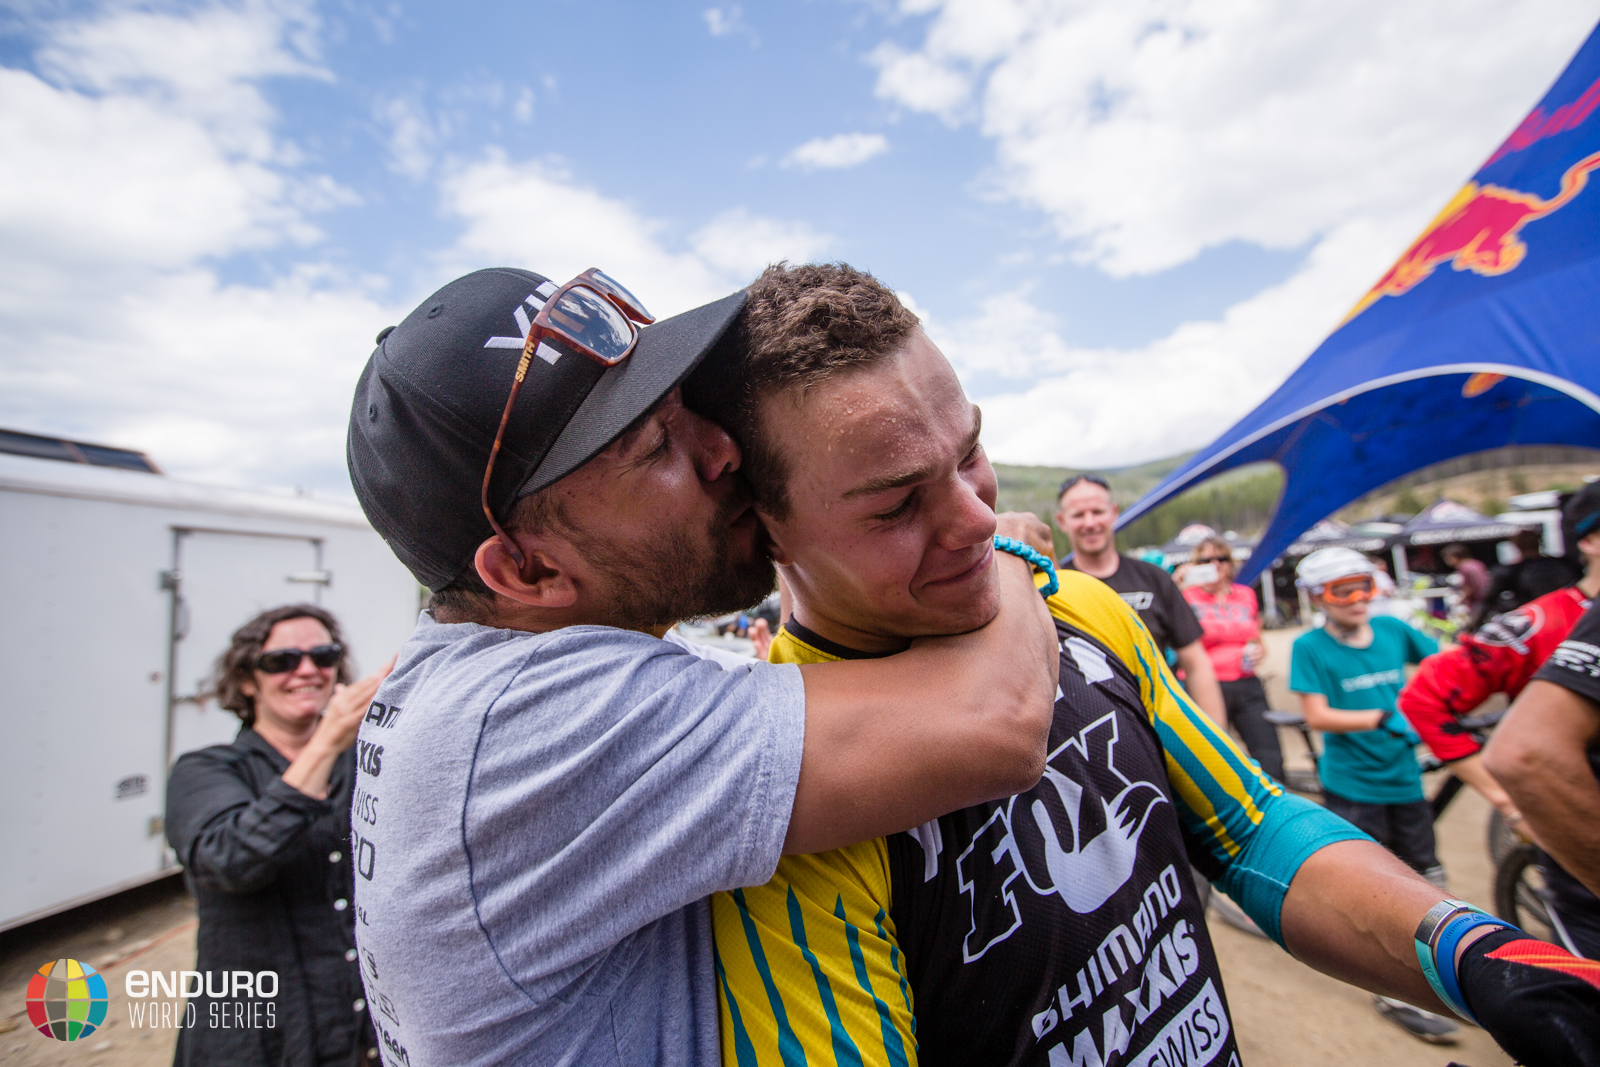 Damien Breach congratulates Richie Rude on his win on stage seven. EWS 5 2014 Winter Park. Photo by Matt Wragg